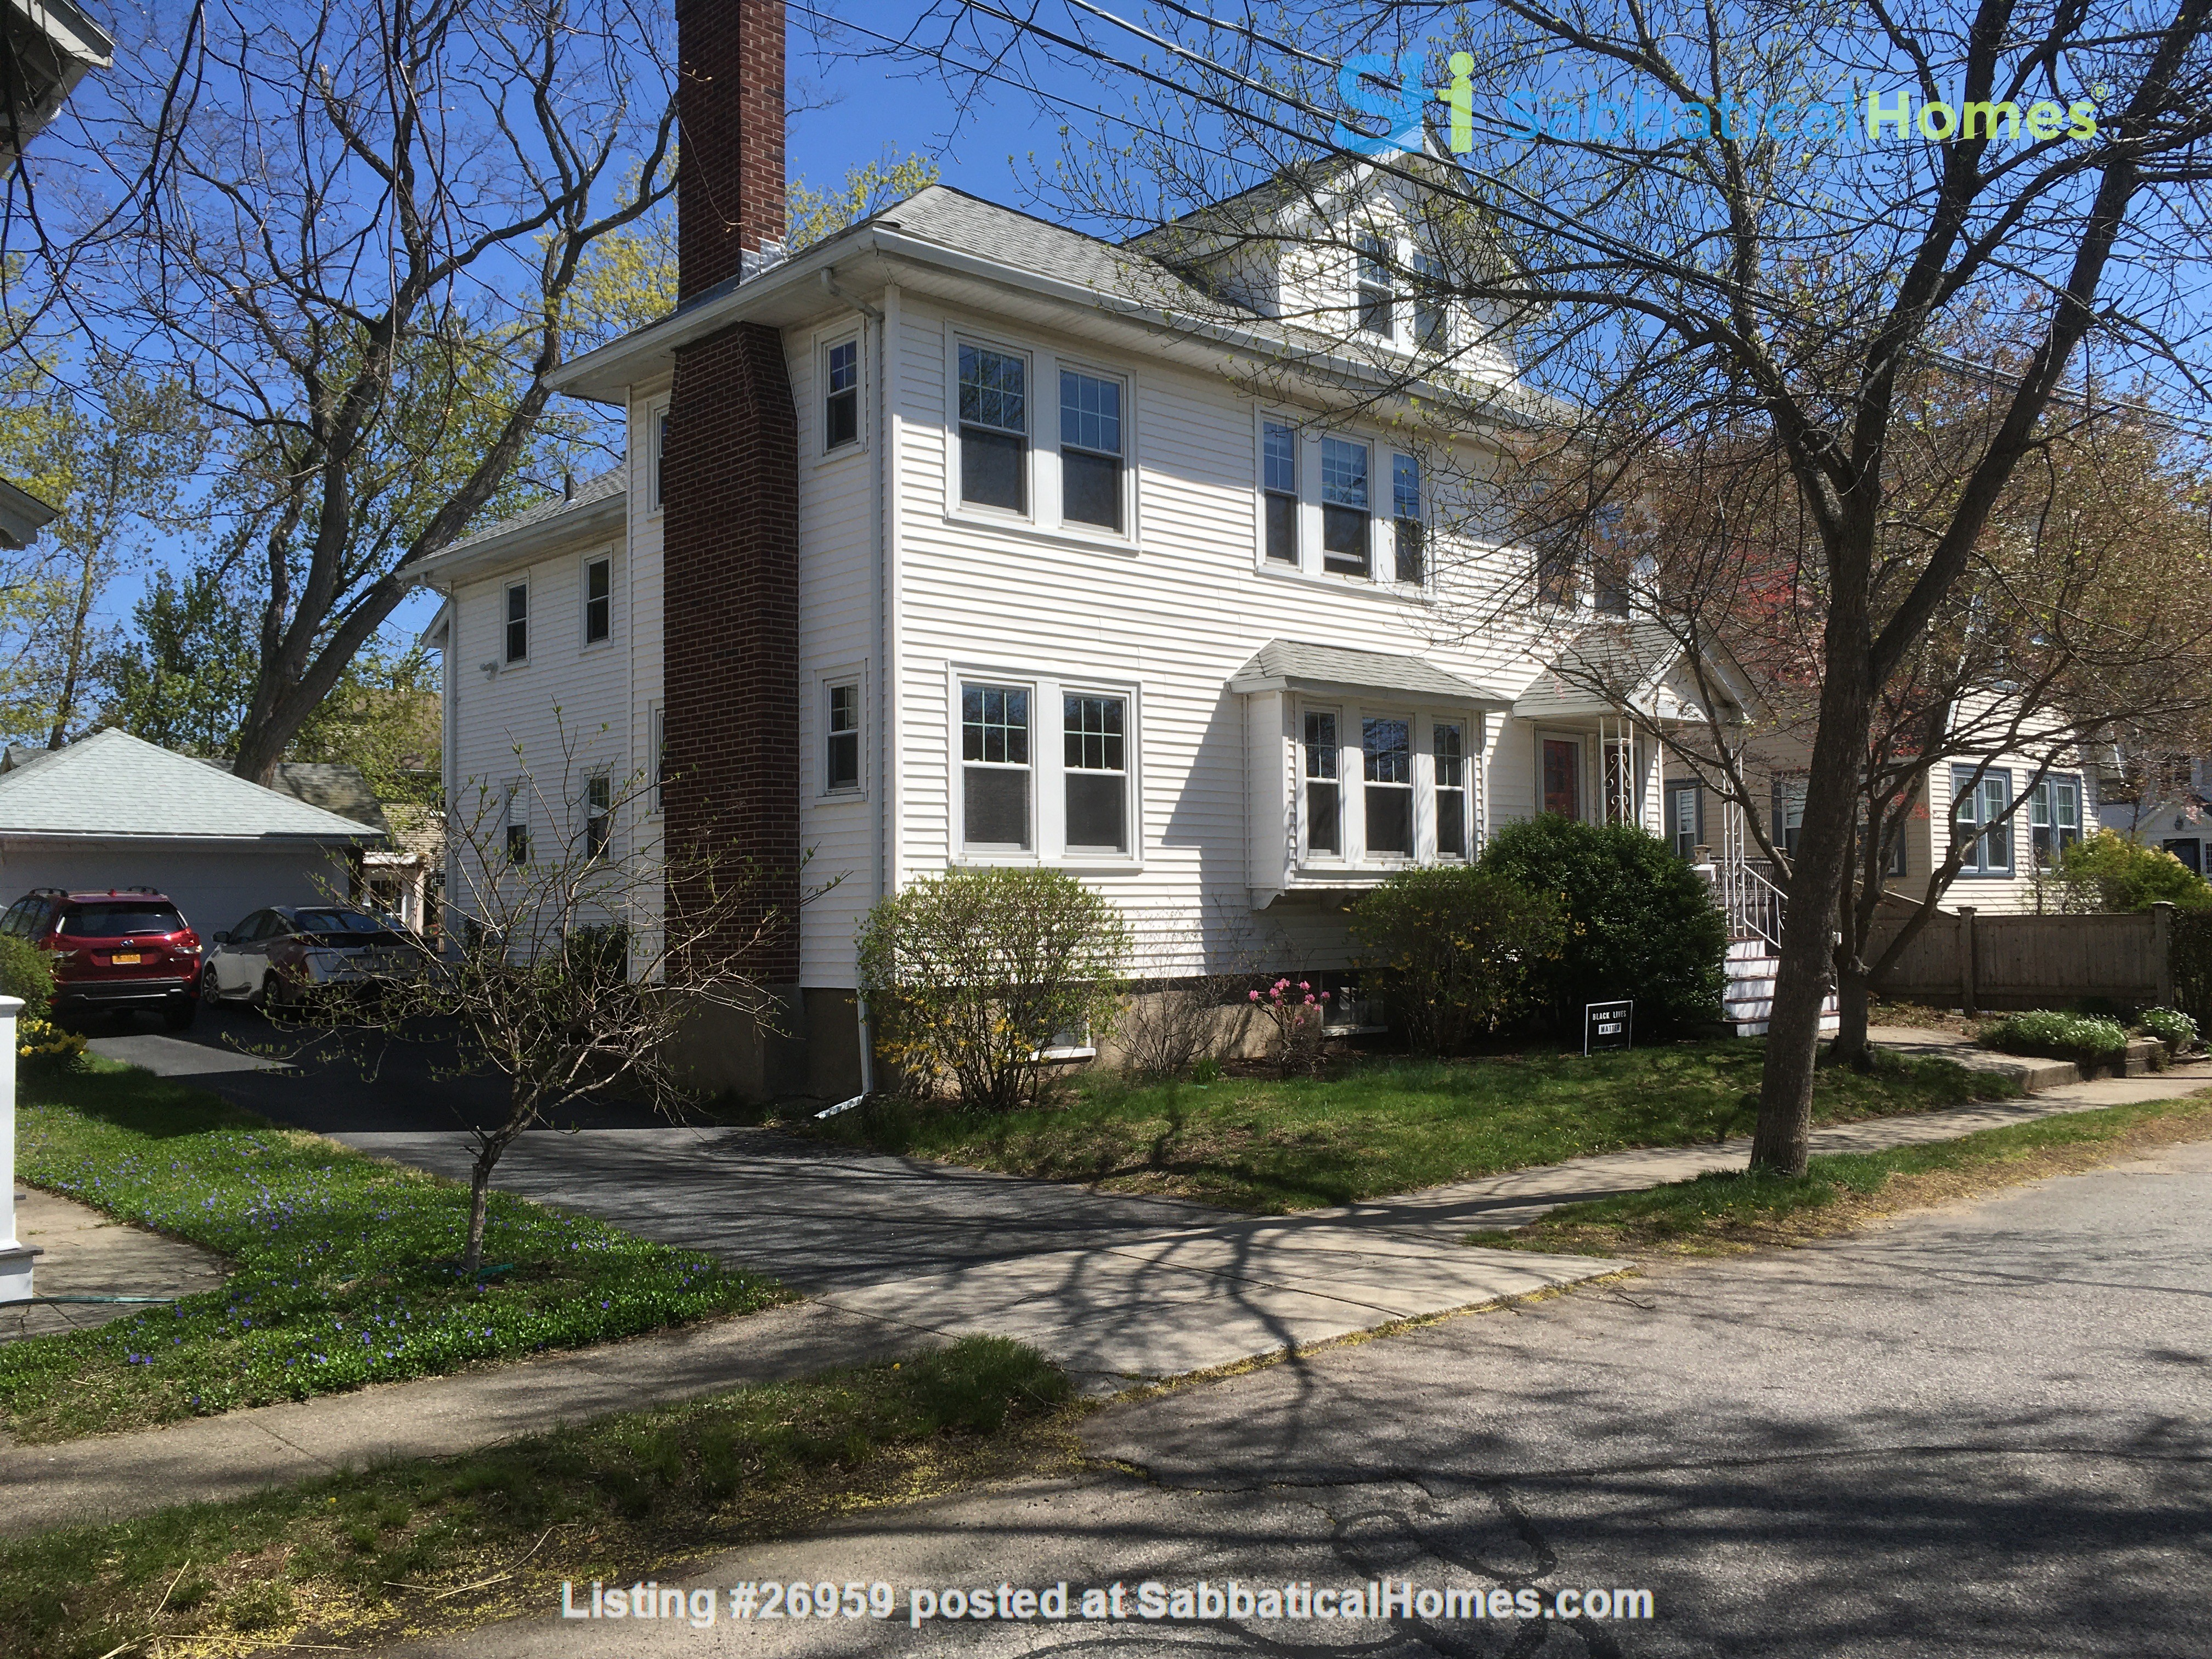 Furnished, Sunny, 2-bdrm apt 2.5 miles to Hrvd Sq., quiet safe neighborhood Home Rental in Belmont, Massachusetts, United States 9